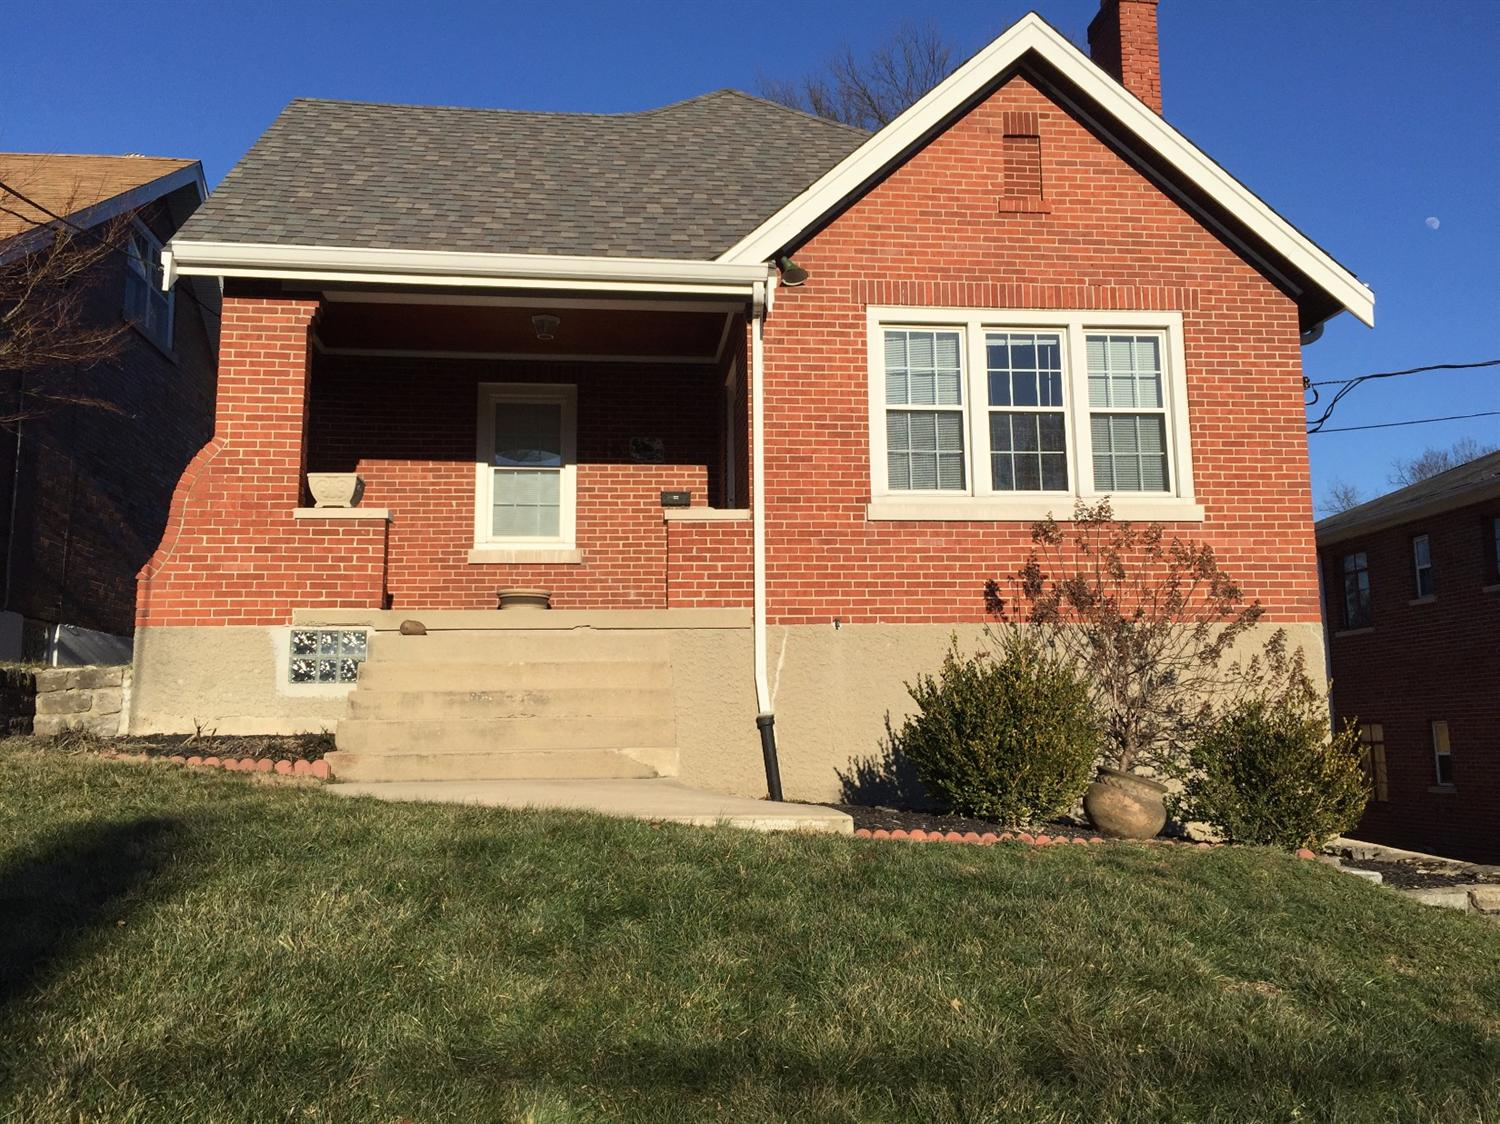 Photo 1 for 16 Requardt Ln Fort Mitchell, KY 41017